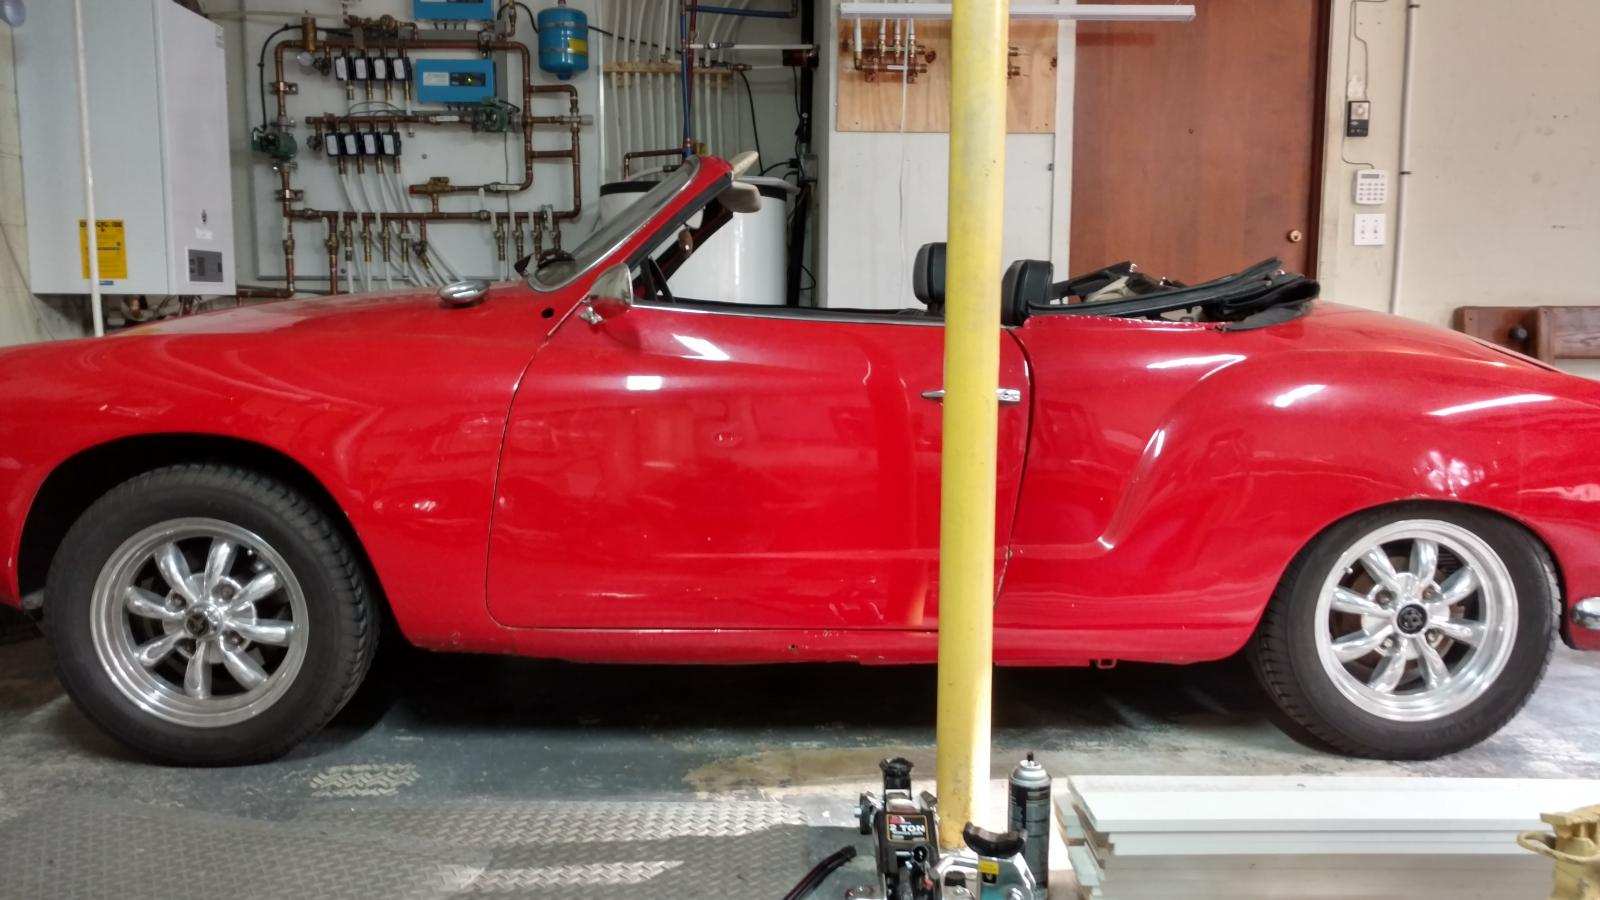 Ghia Sagging Rear? Or wrong tire size